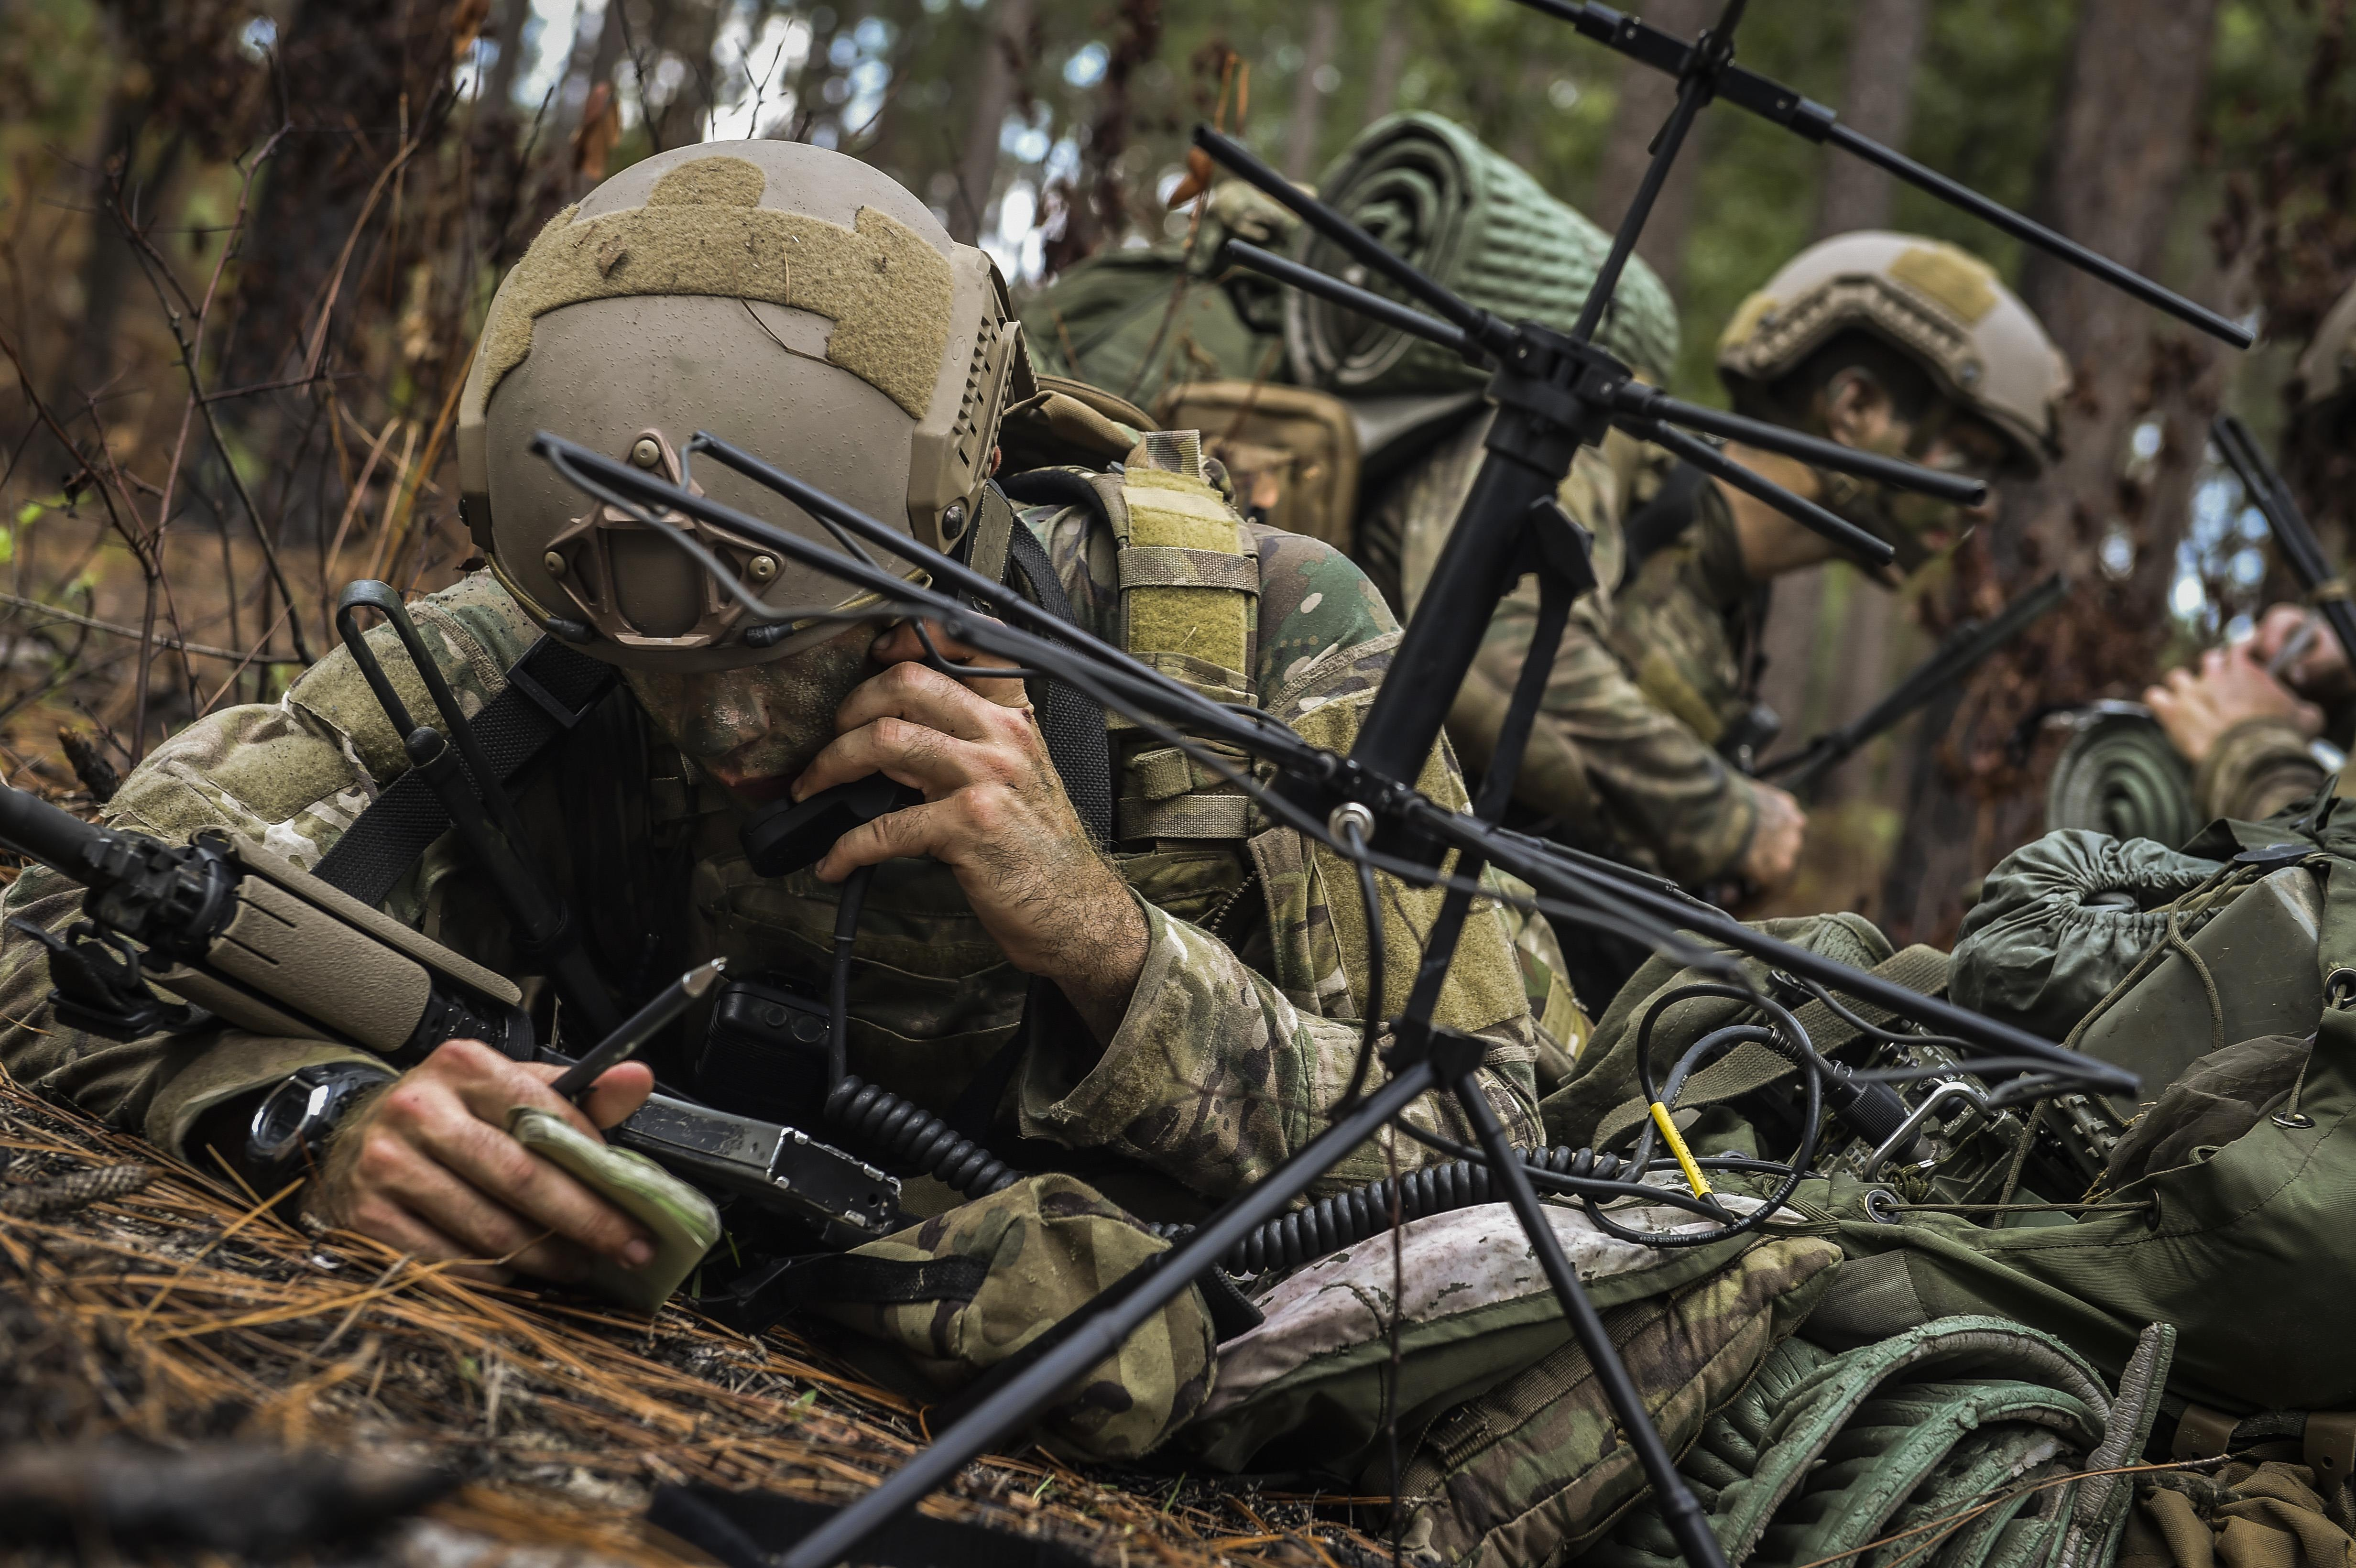 Calm in the chaos: Aspiring combat controllers work under